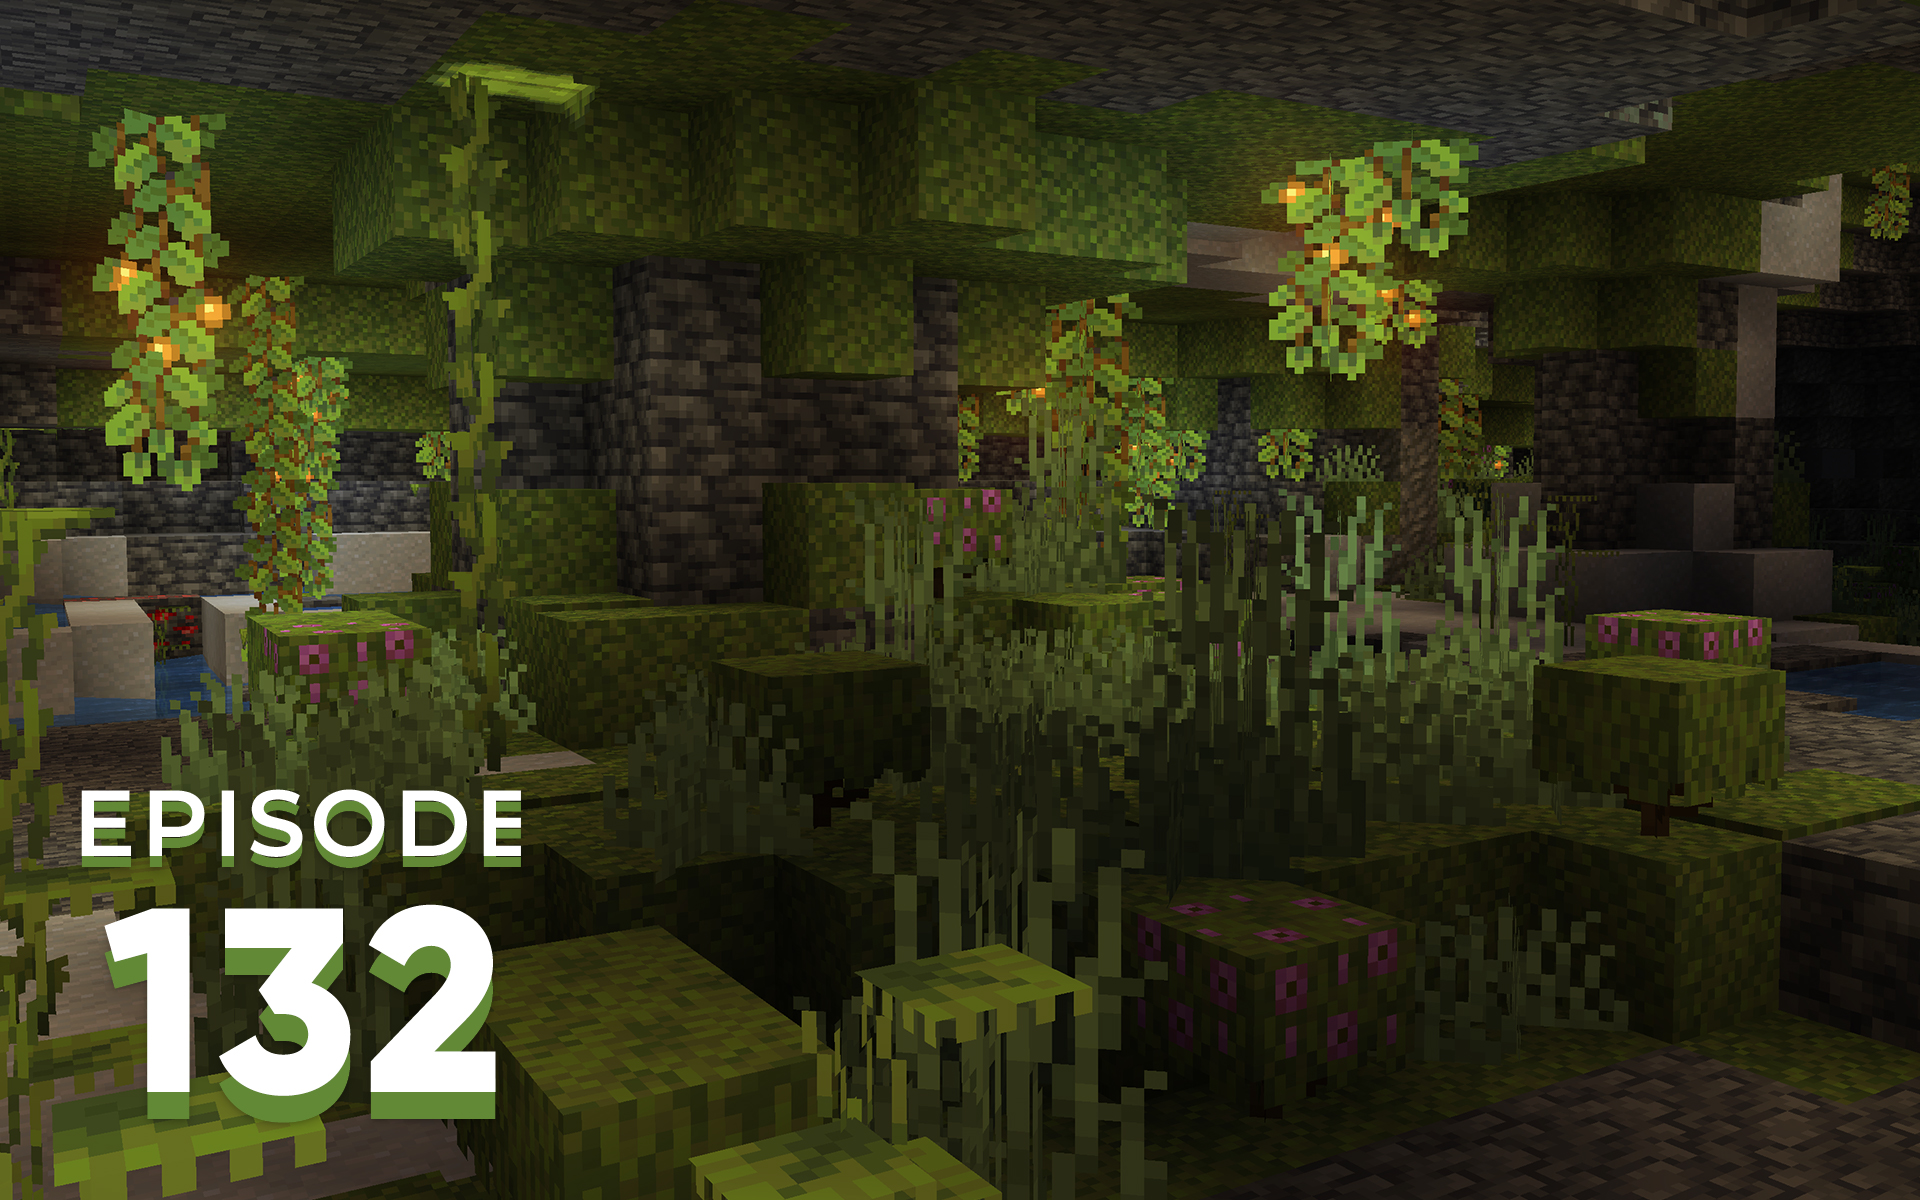 The Spawn Chunks 132: Rushing Into Lush Caves